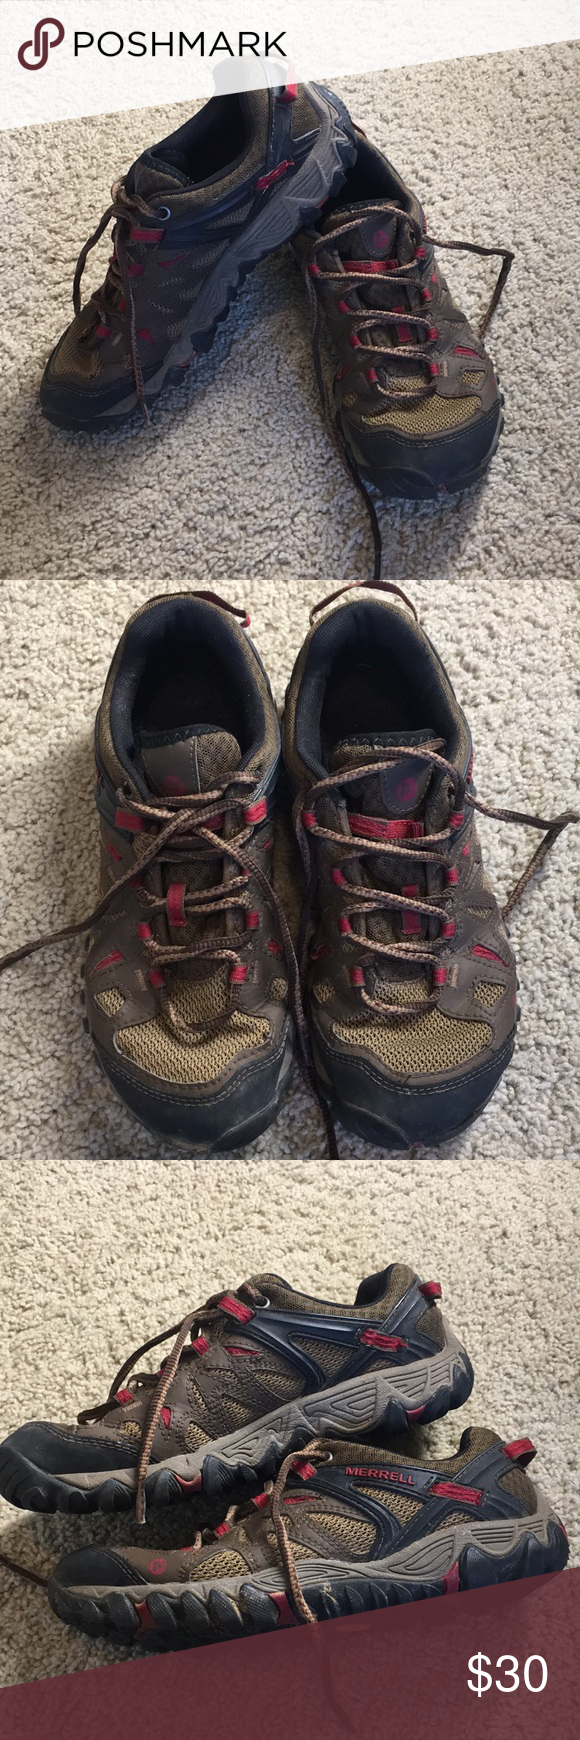 a717e53f13e Merrill women's hikers Merrill women's hiking shoes gently used ...